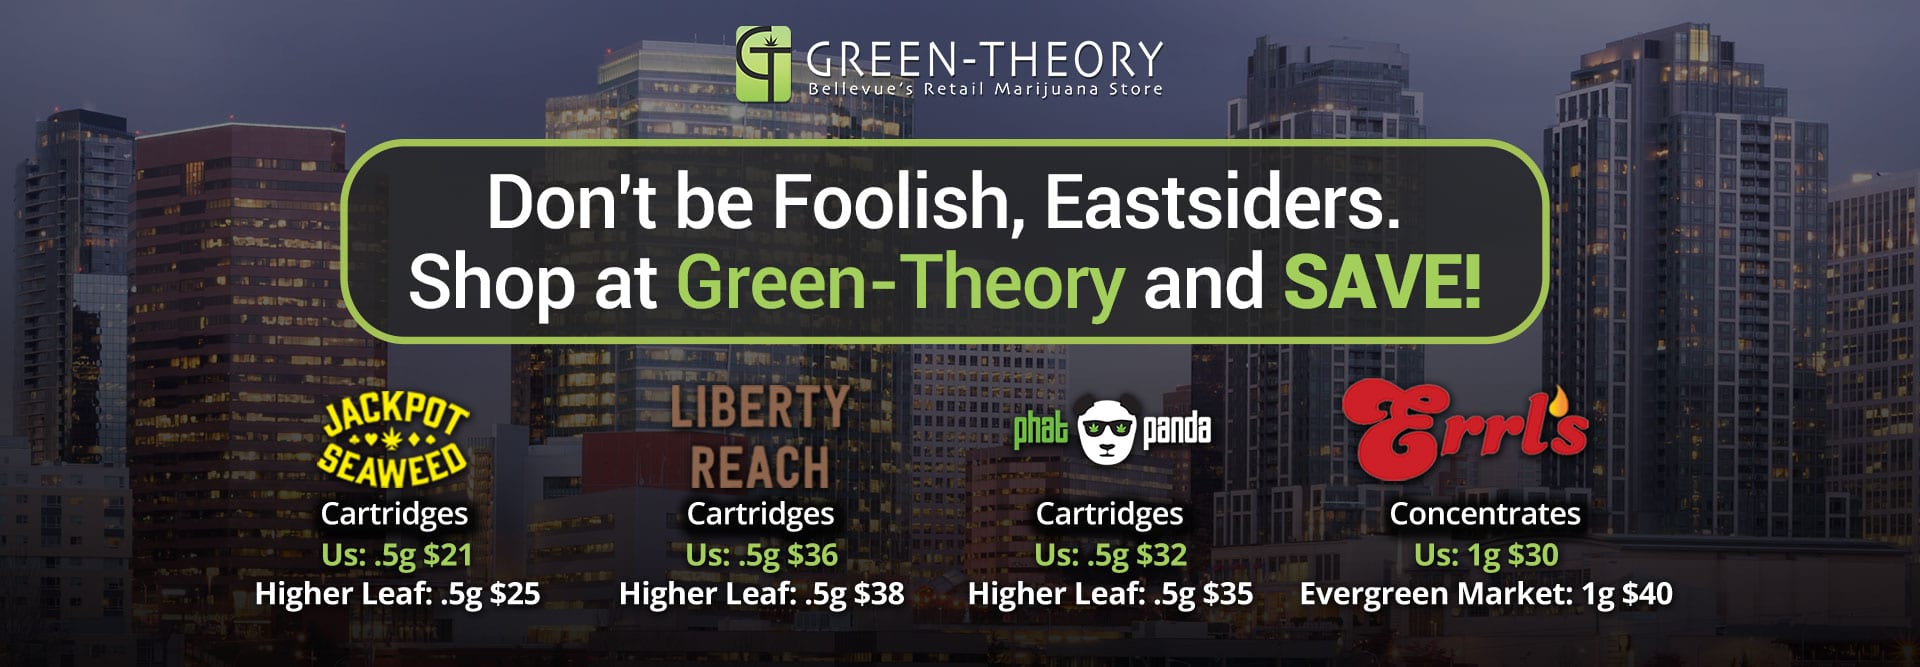 green-theory-best-prices-legal-weed-slide-2